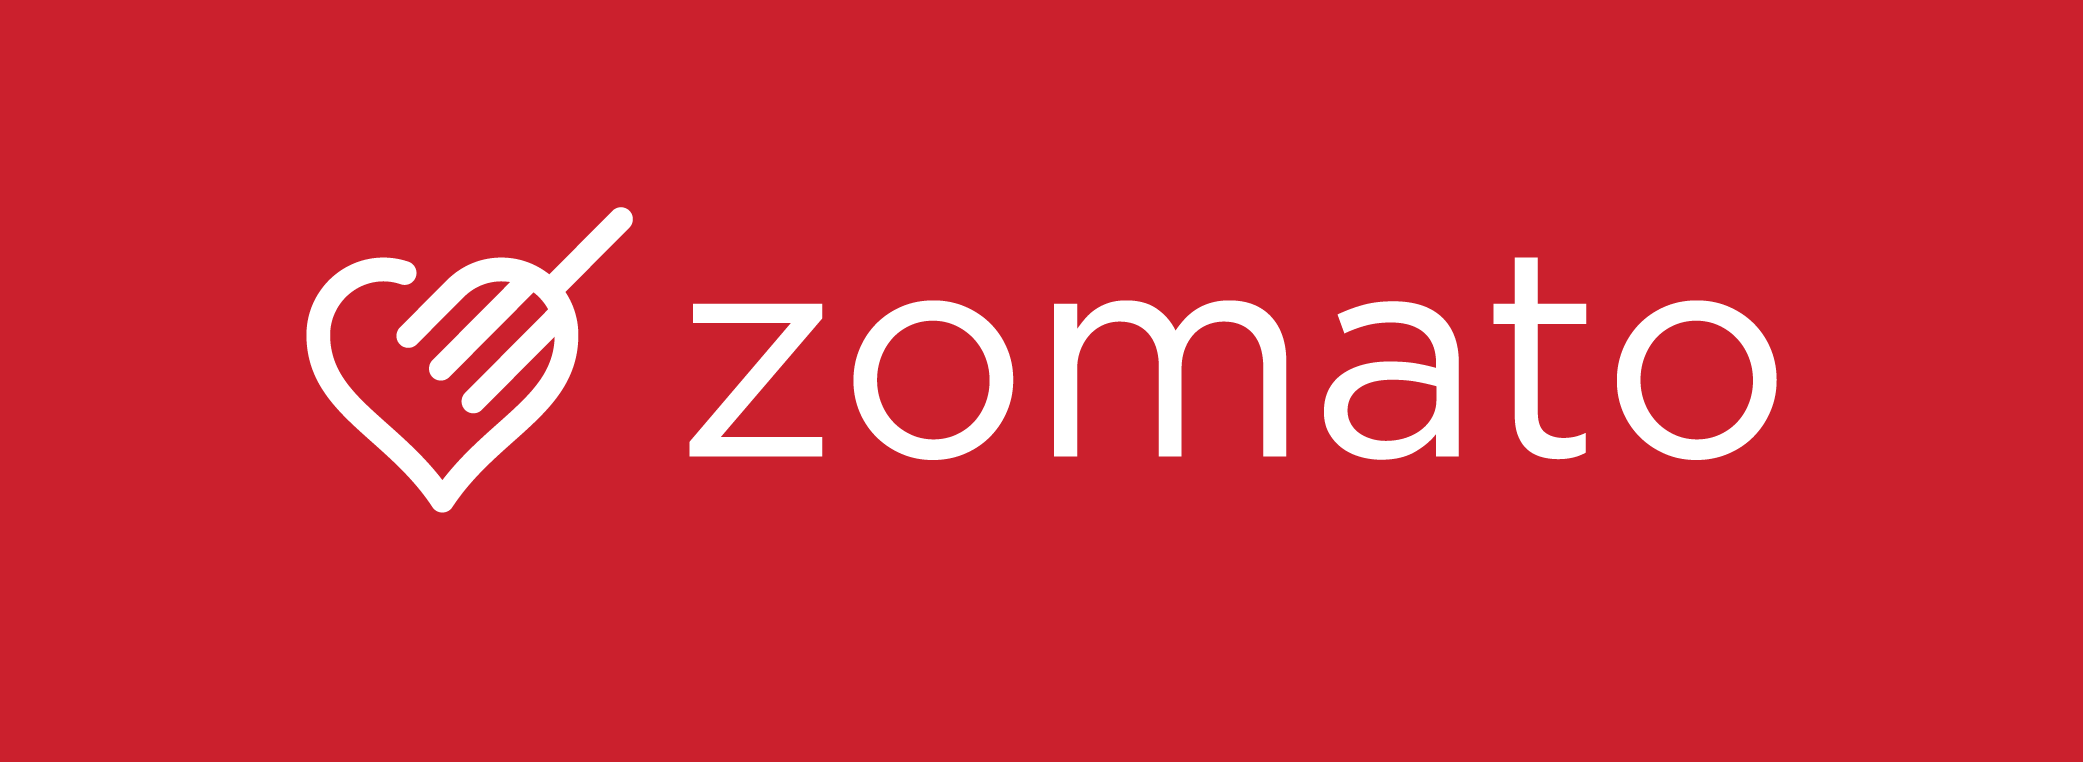 Zomato Logo Vector Icon Template Clipart Free Download.